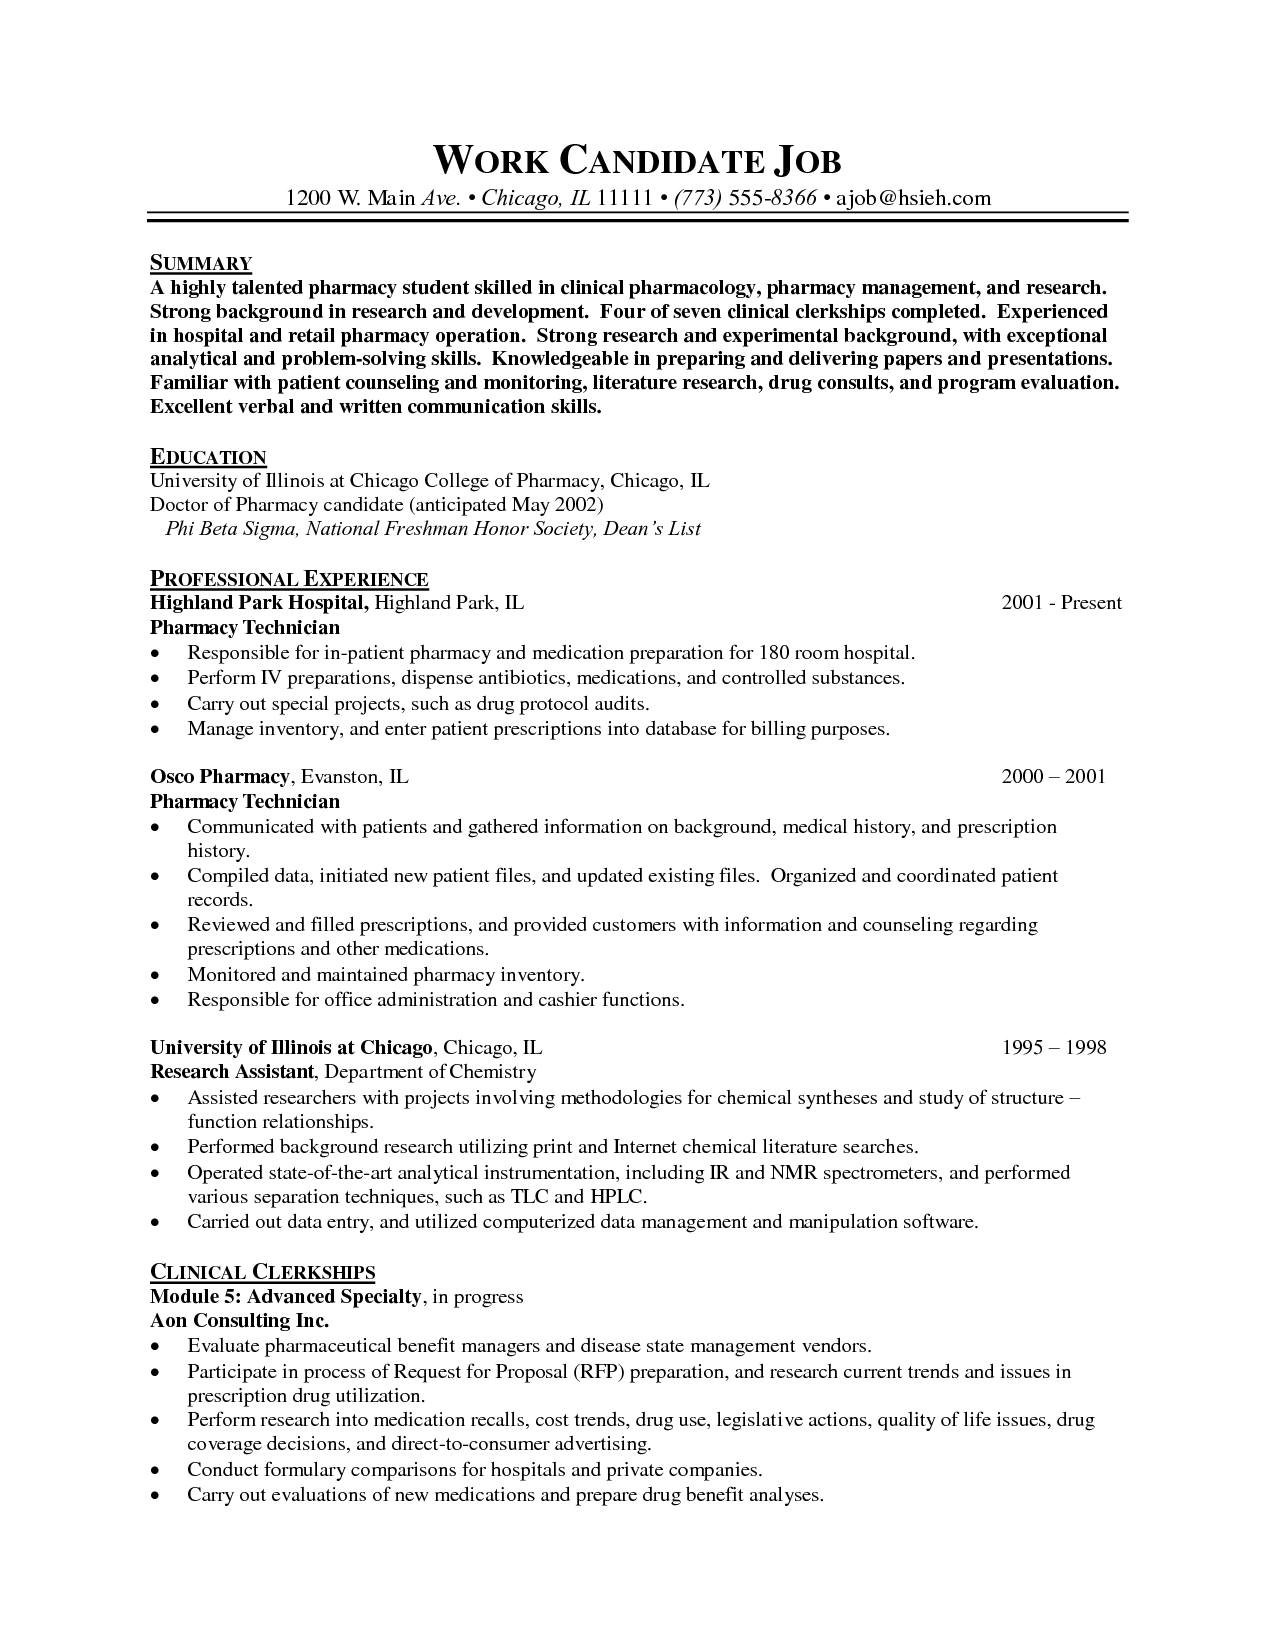 Professional Resume Cover Letter Sample | Get Instant, Risk Free, Access To  The Full  Pharmacist Resume Cover Letter